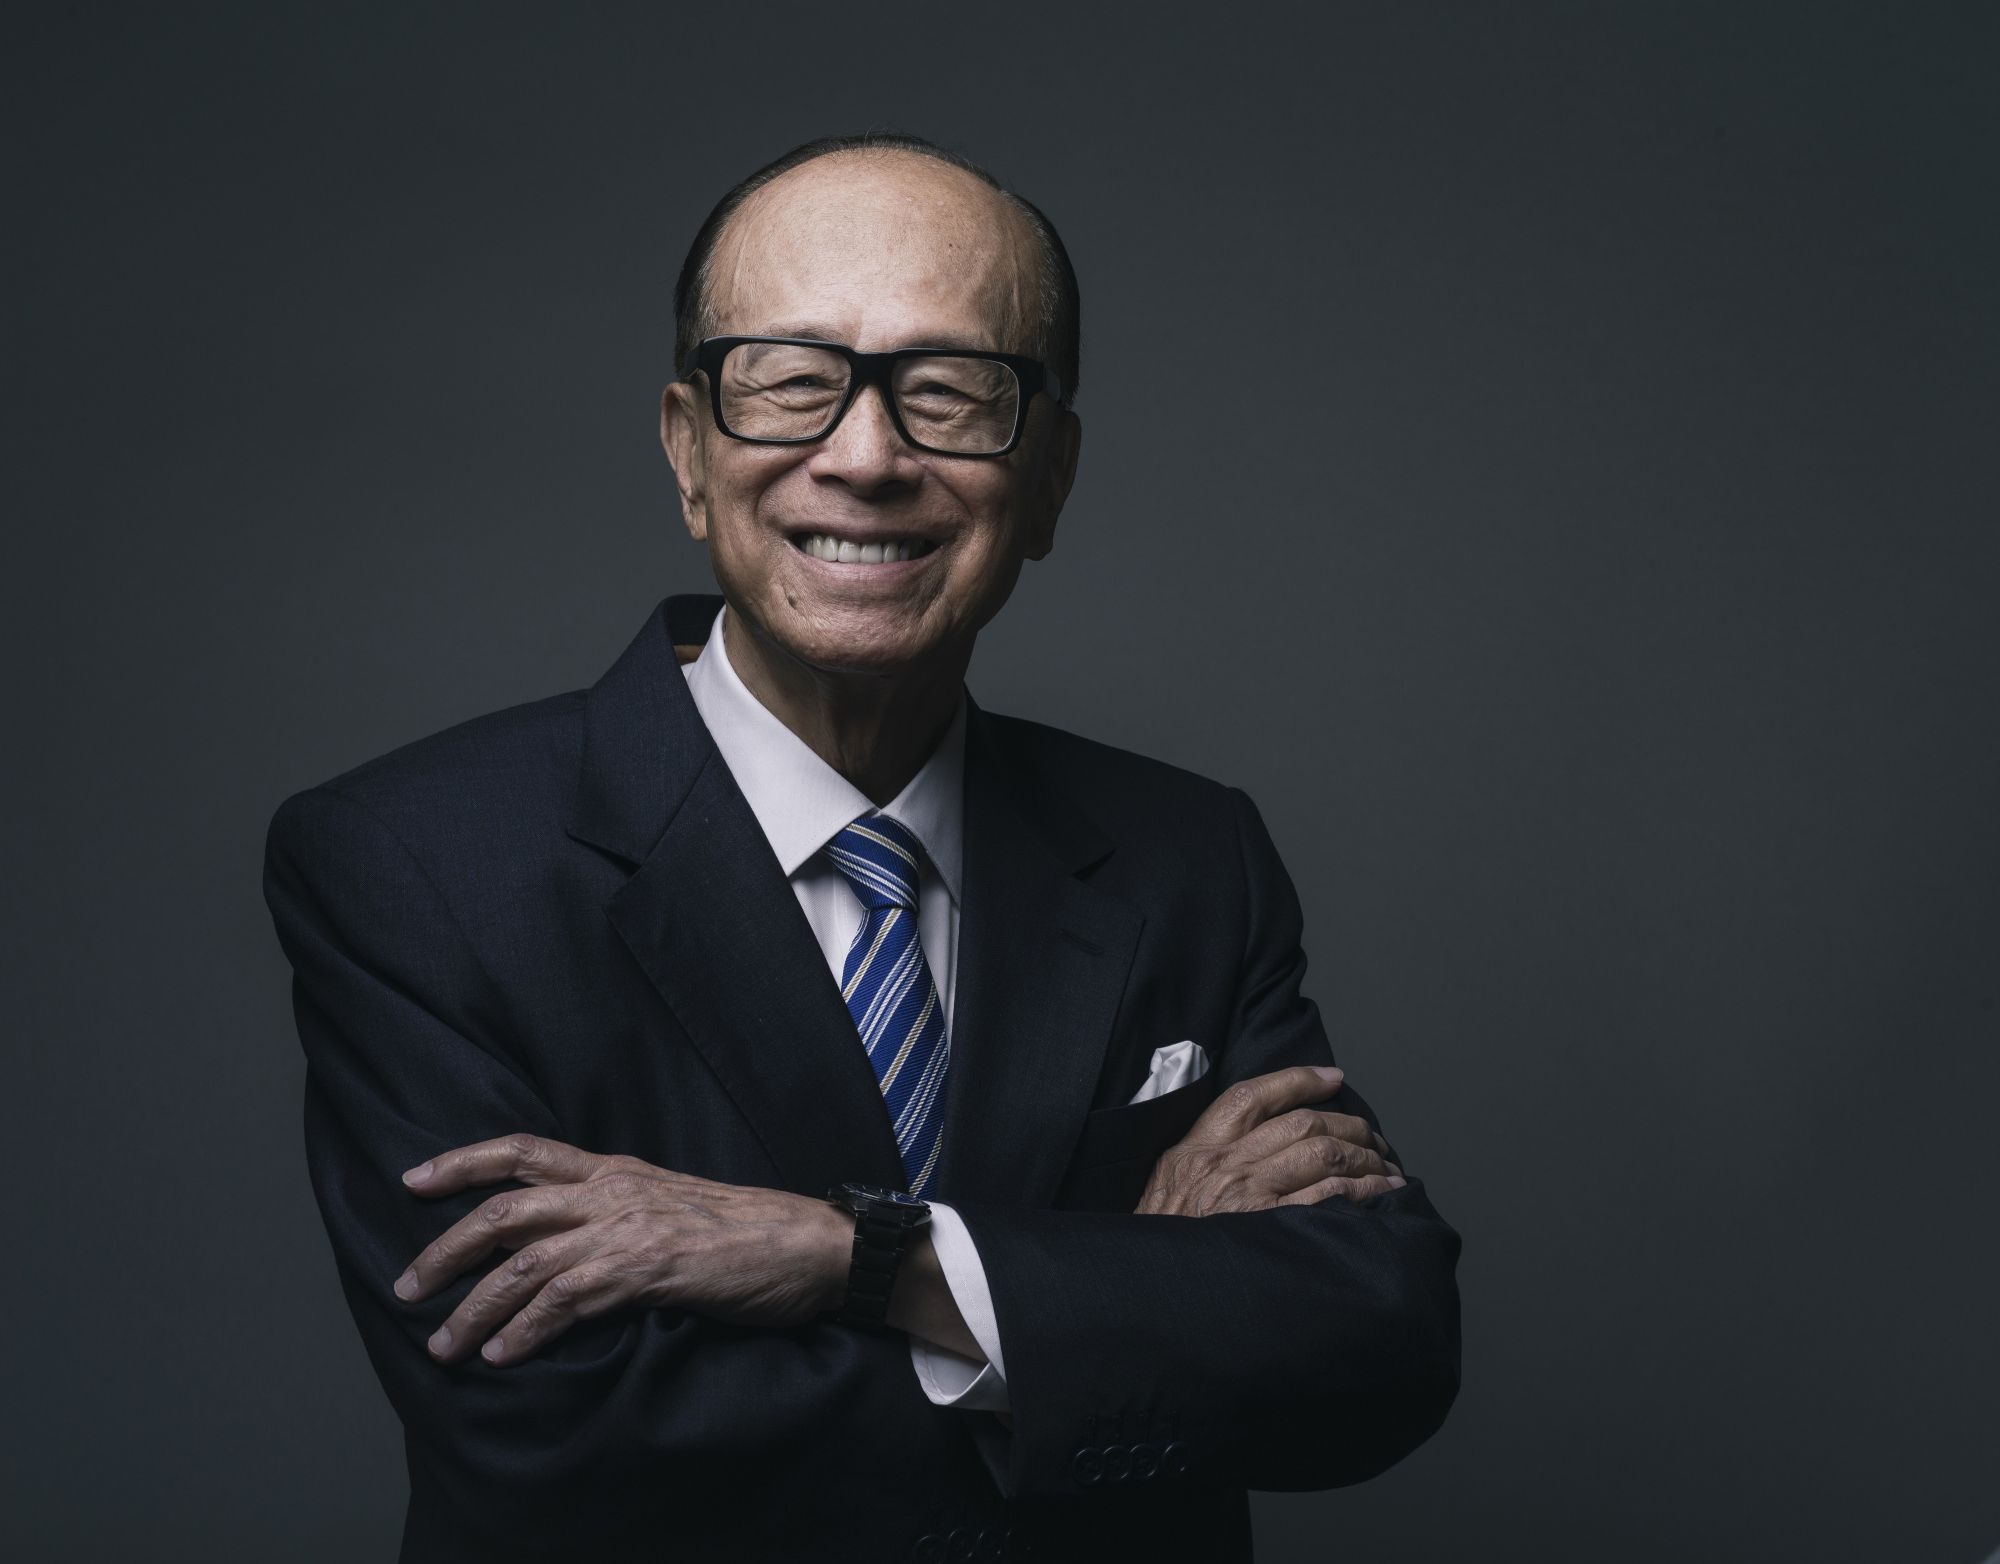 Superman Retires: 5 Things You Didn't Know About Hong Kong Tycoon Li Ka-Shing